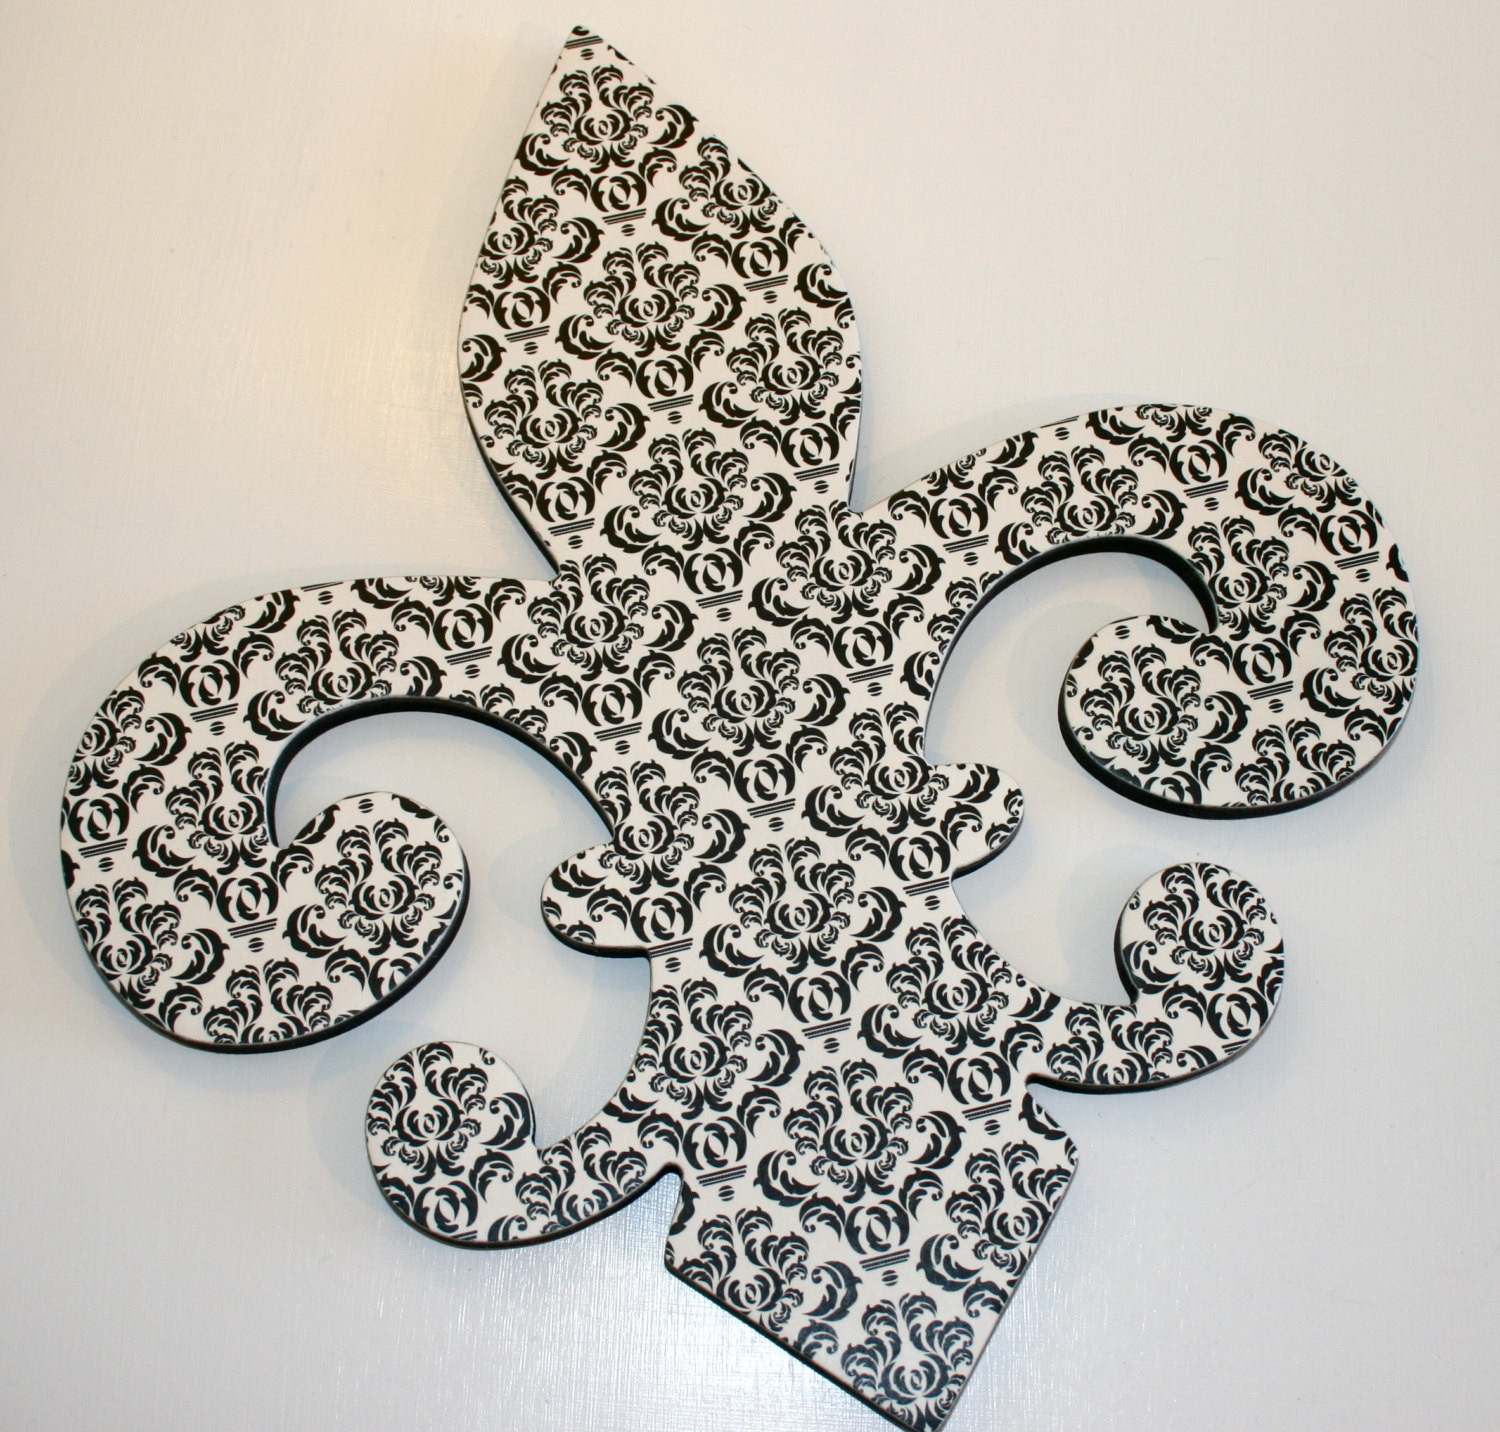 Best ideas about Fleur Di Lis Wall Art . Save or Pin Fleur de lis wall decor Black and white wall decor French Now.